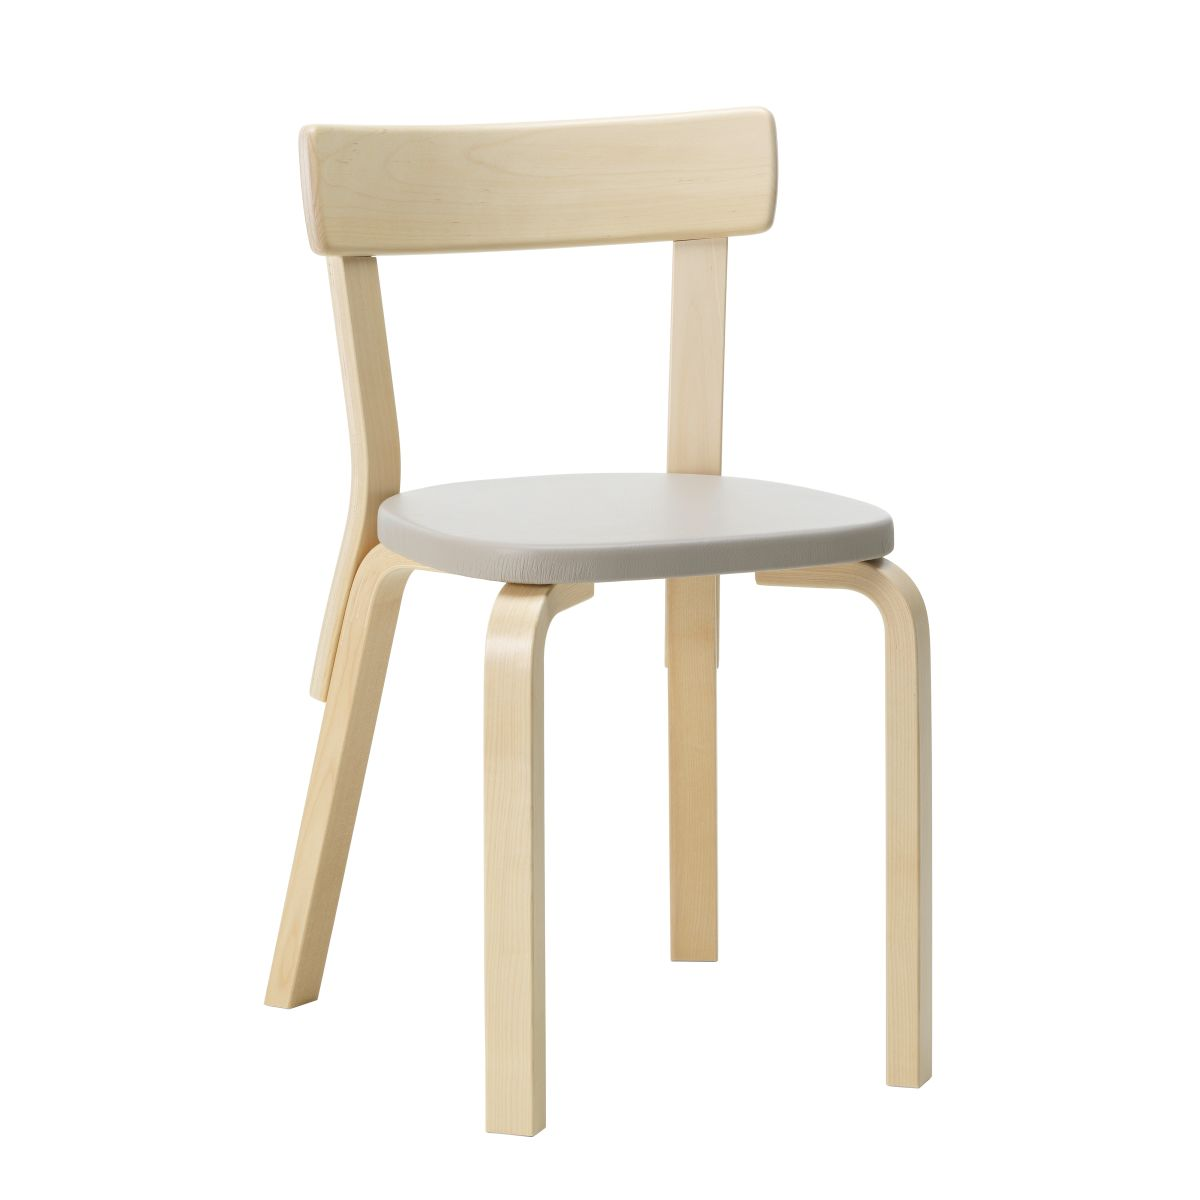 Chair-69-natural-upholstery-Sörensen-Prestige-beige-w-o-padding_F-2868267